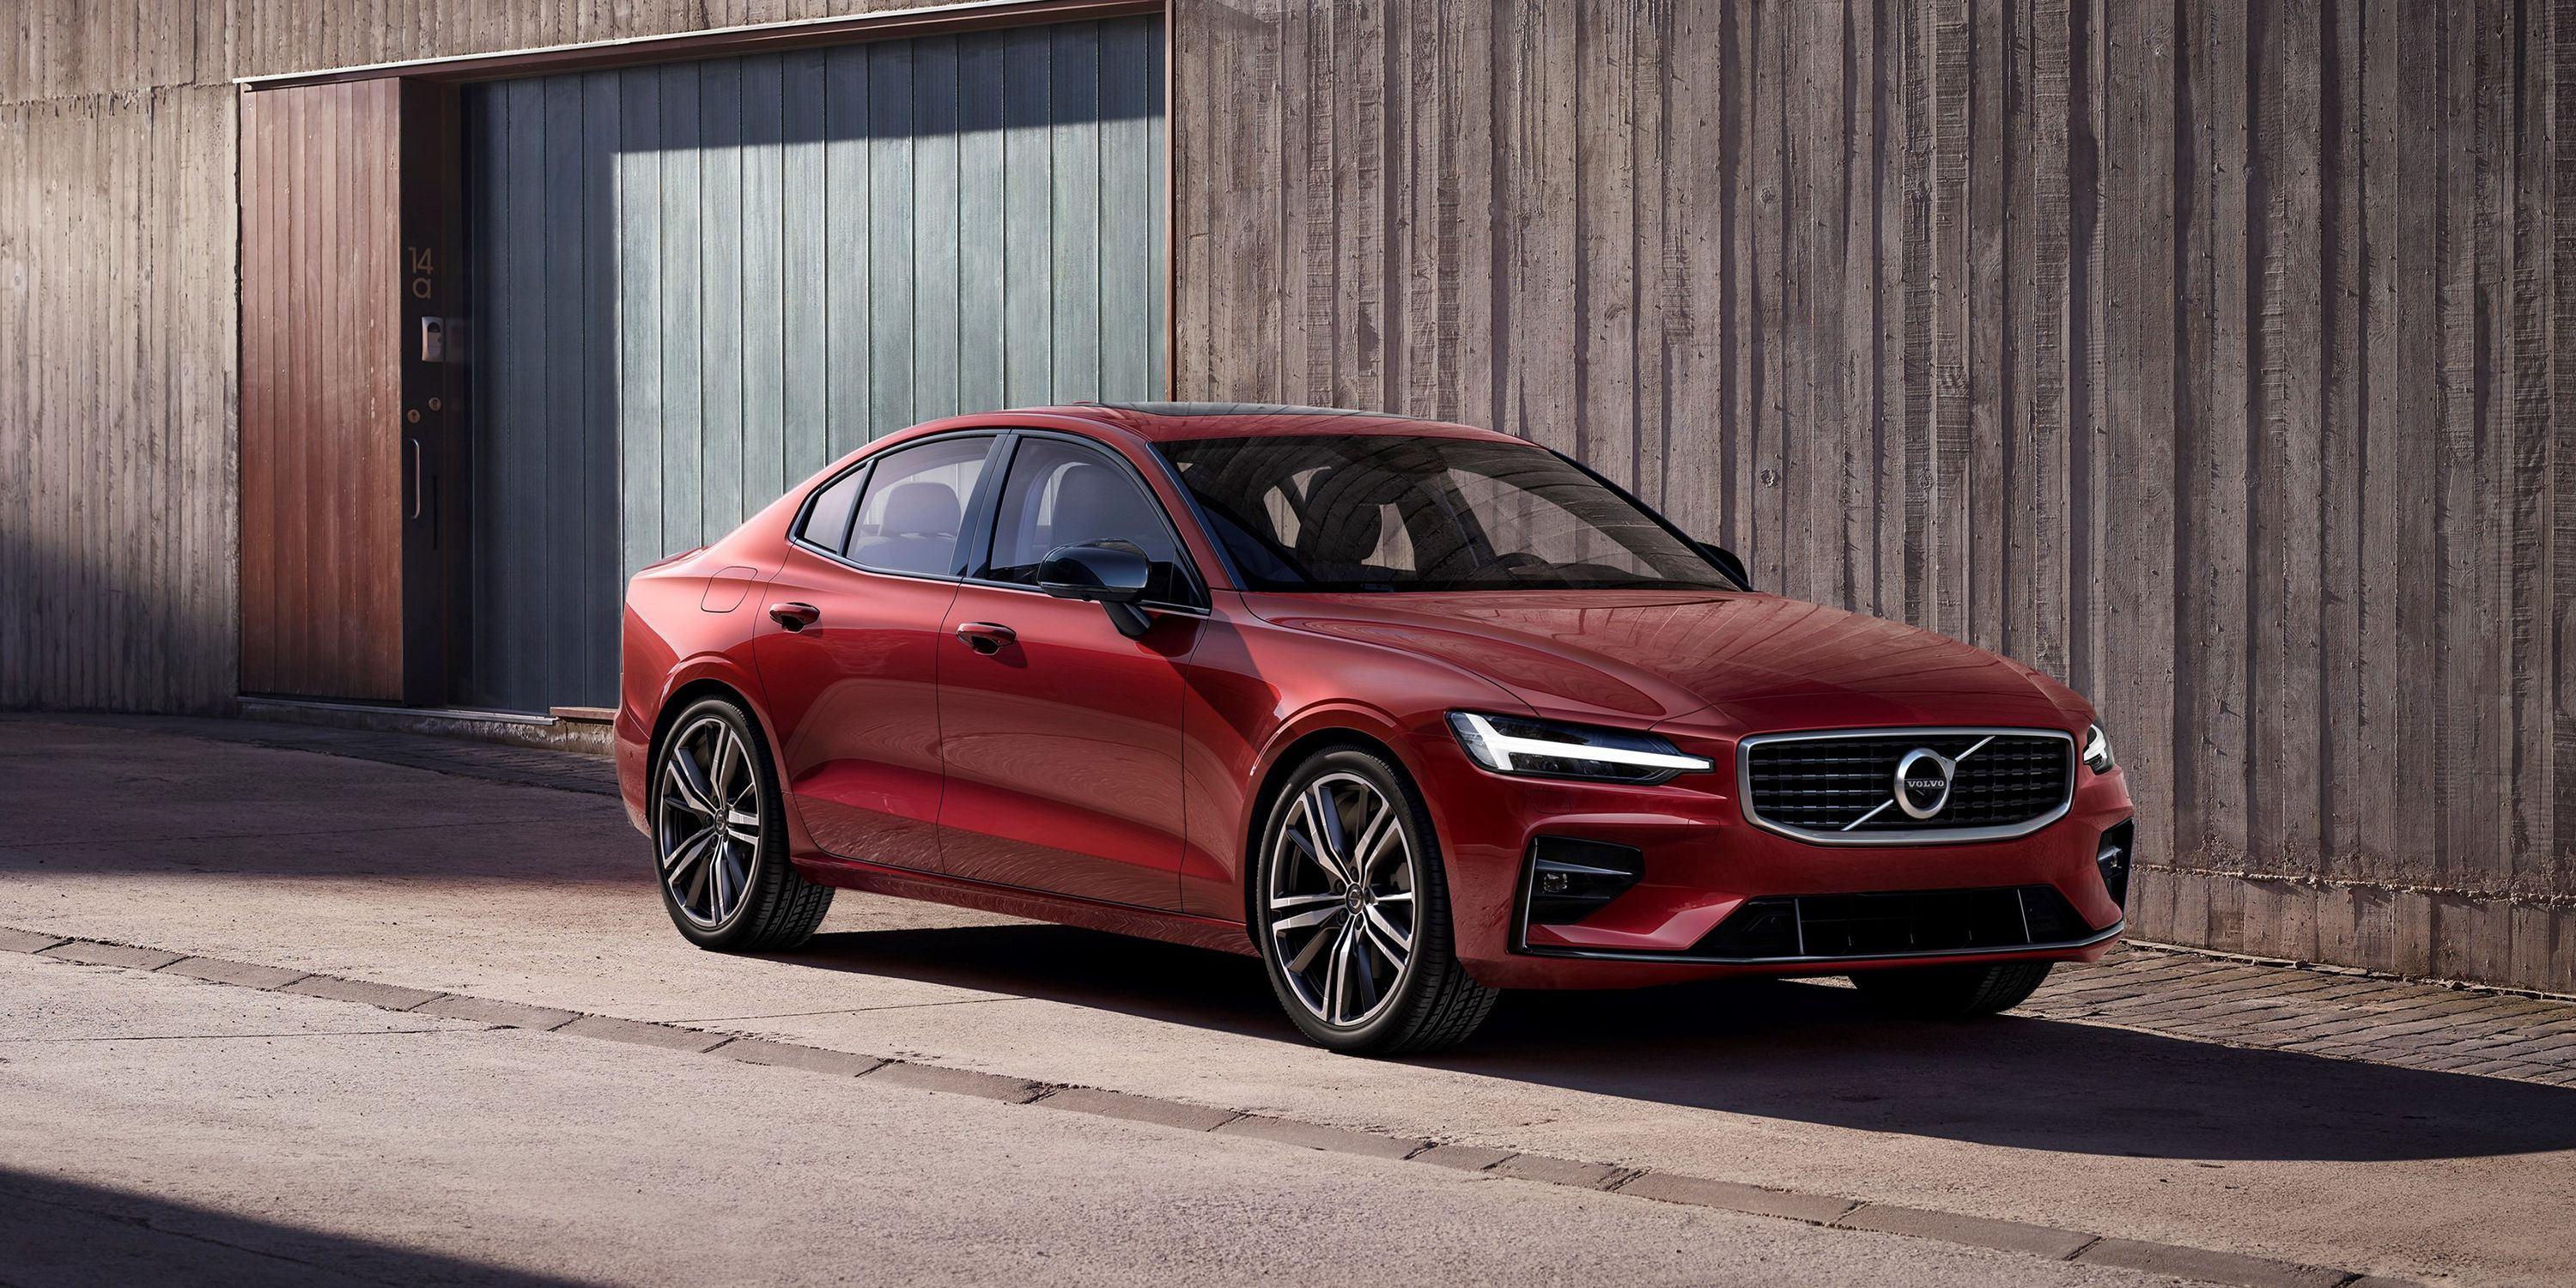 72 The Best 2020 Volvo S60 Redesign and Review